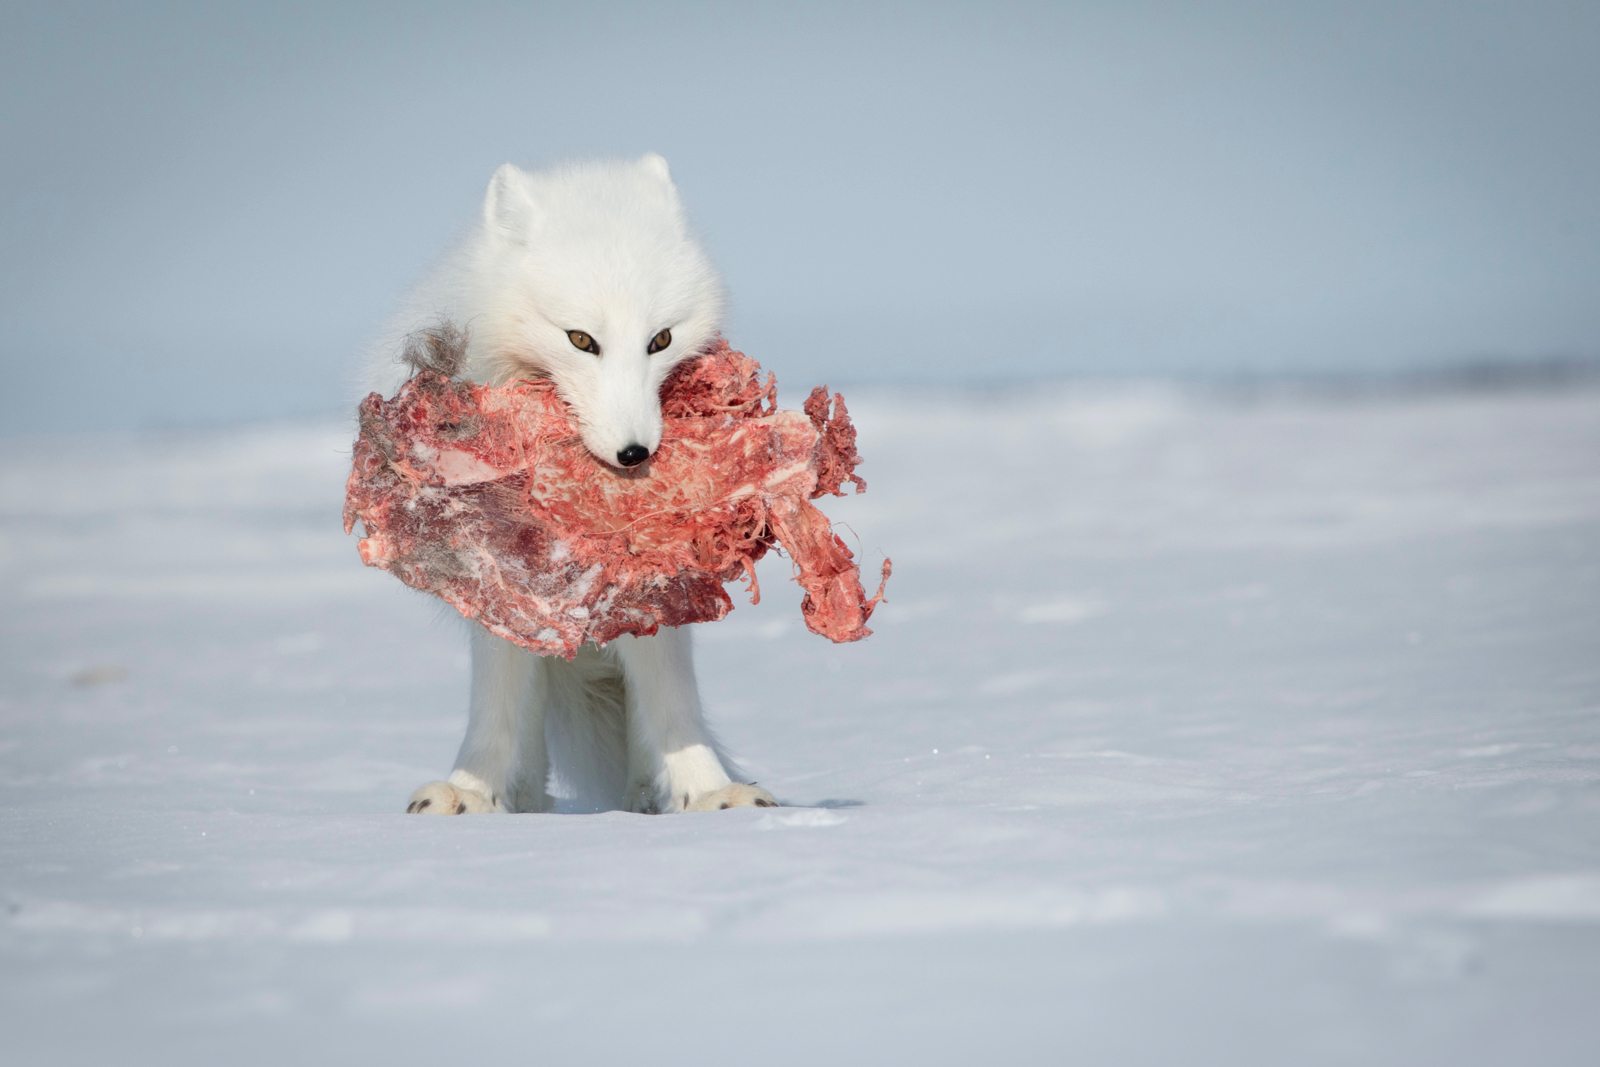 Arctic fox with carcass